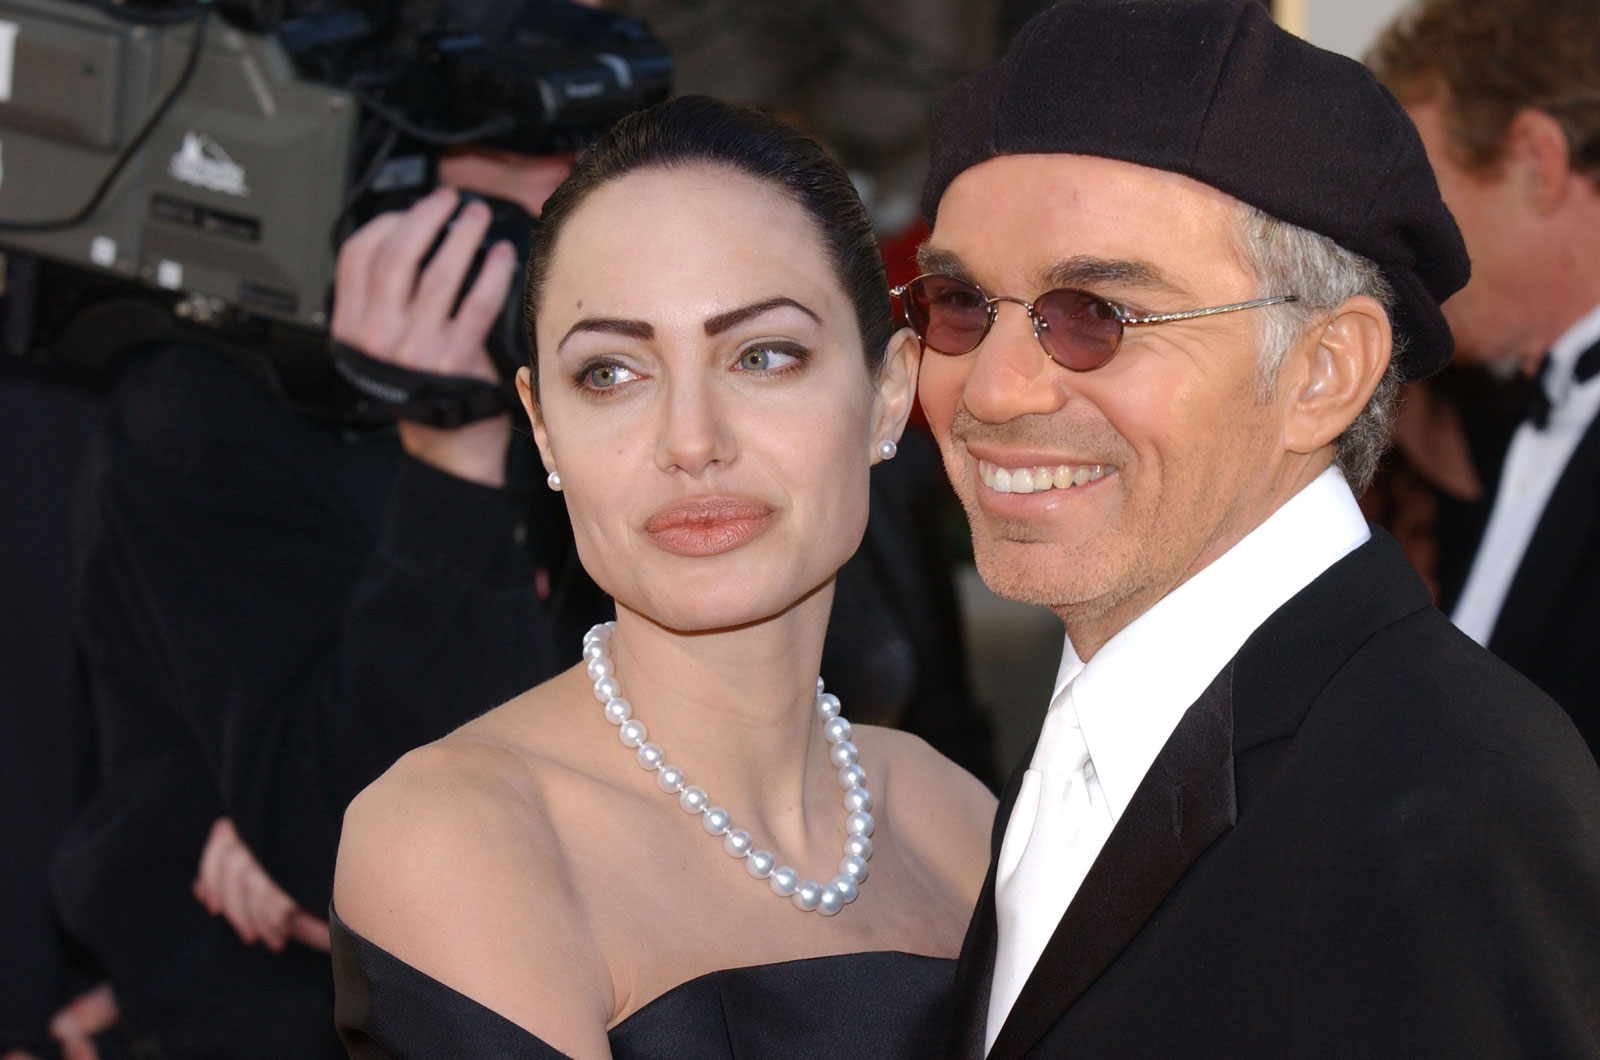 angelina-jolie-billy-bob-thornton-married.jpg